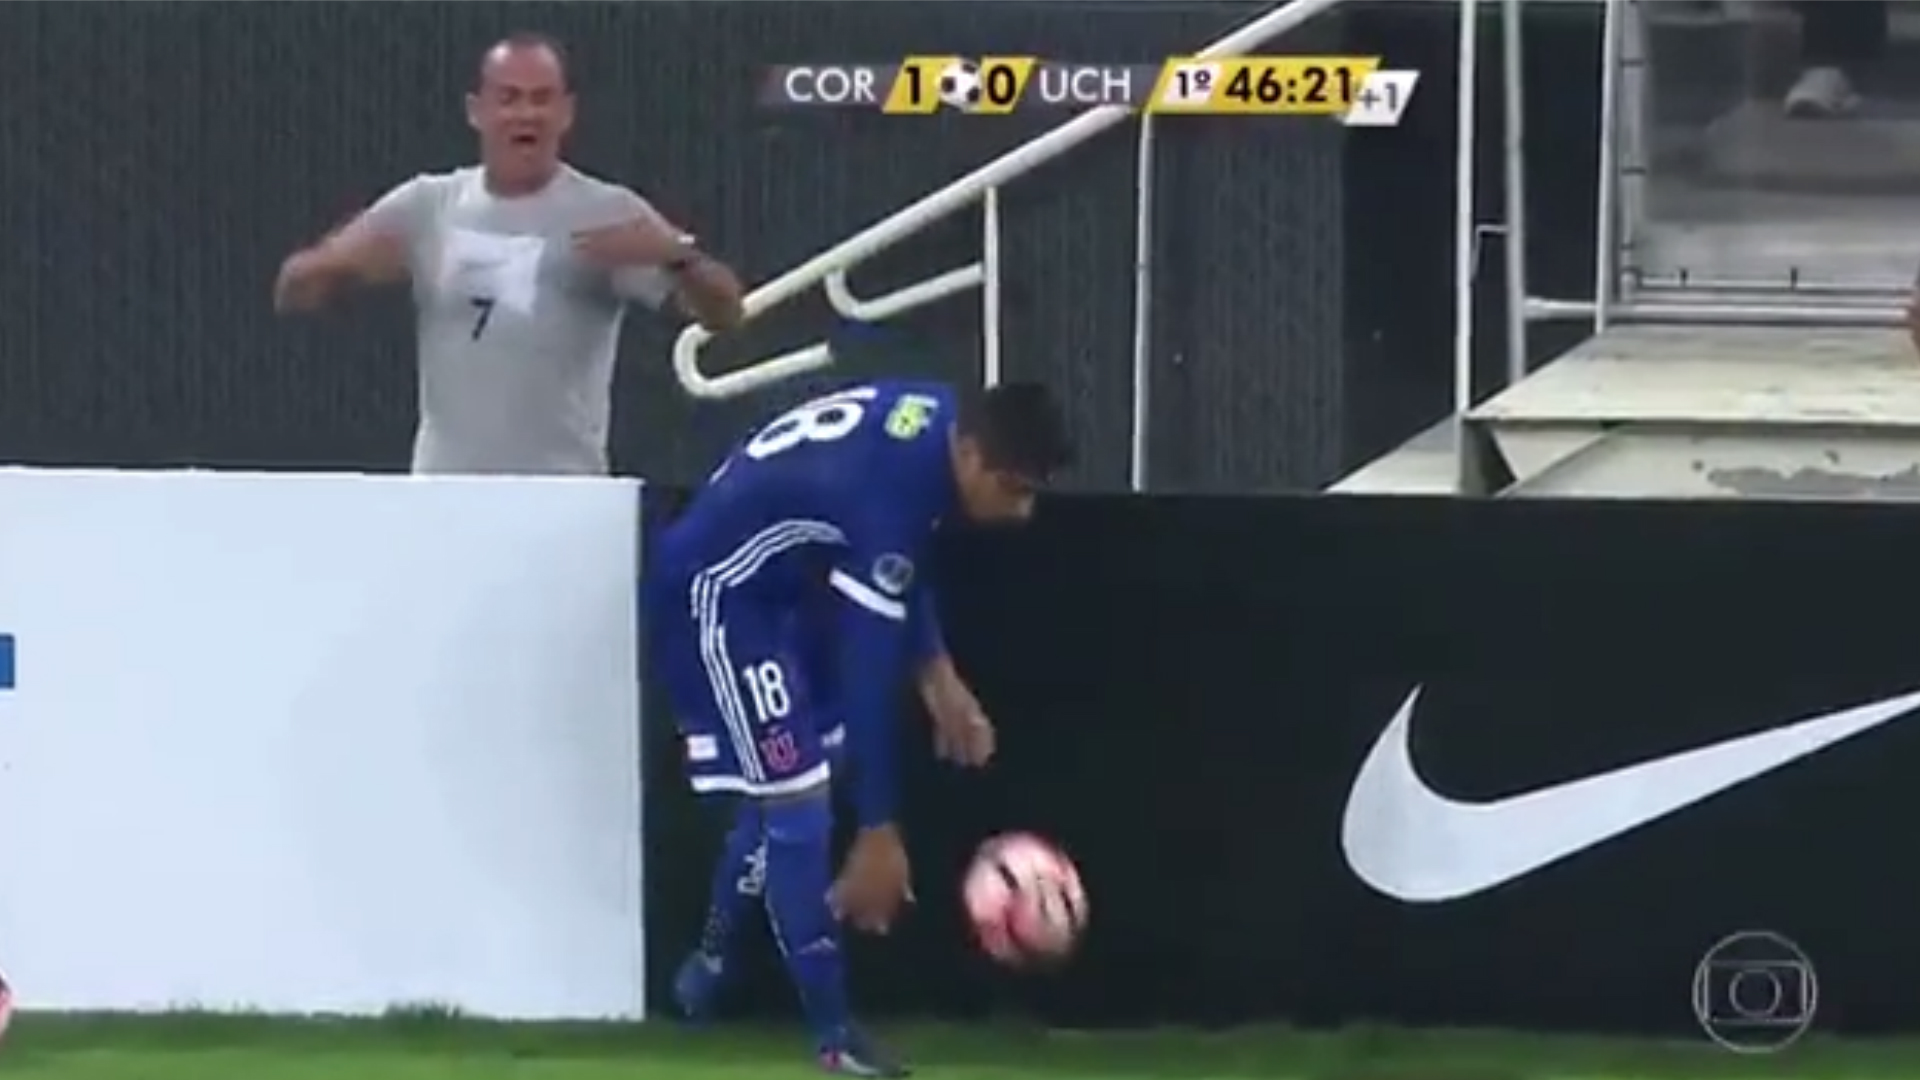 The most amazing dive ever